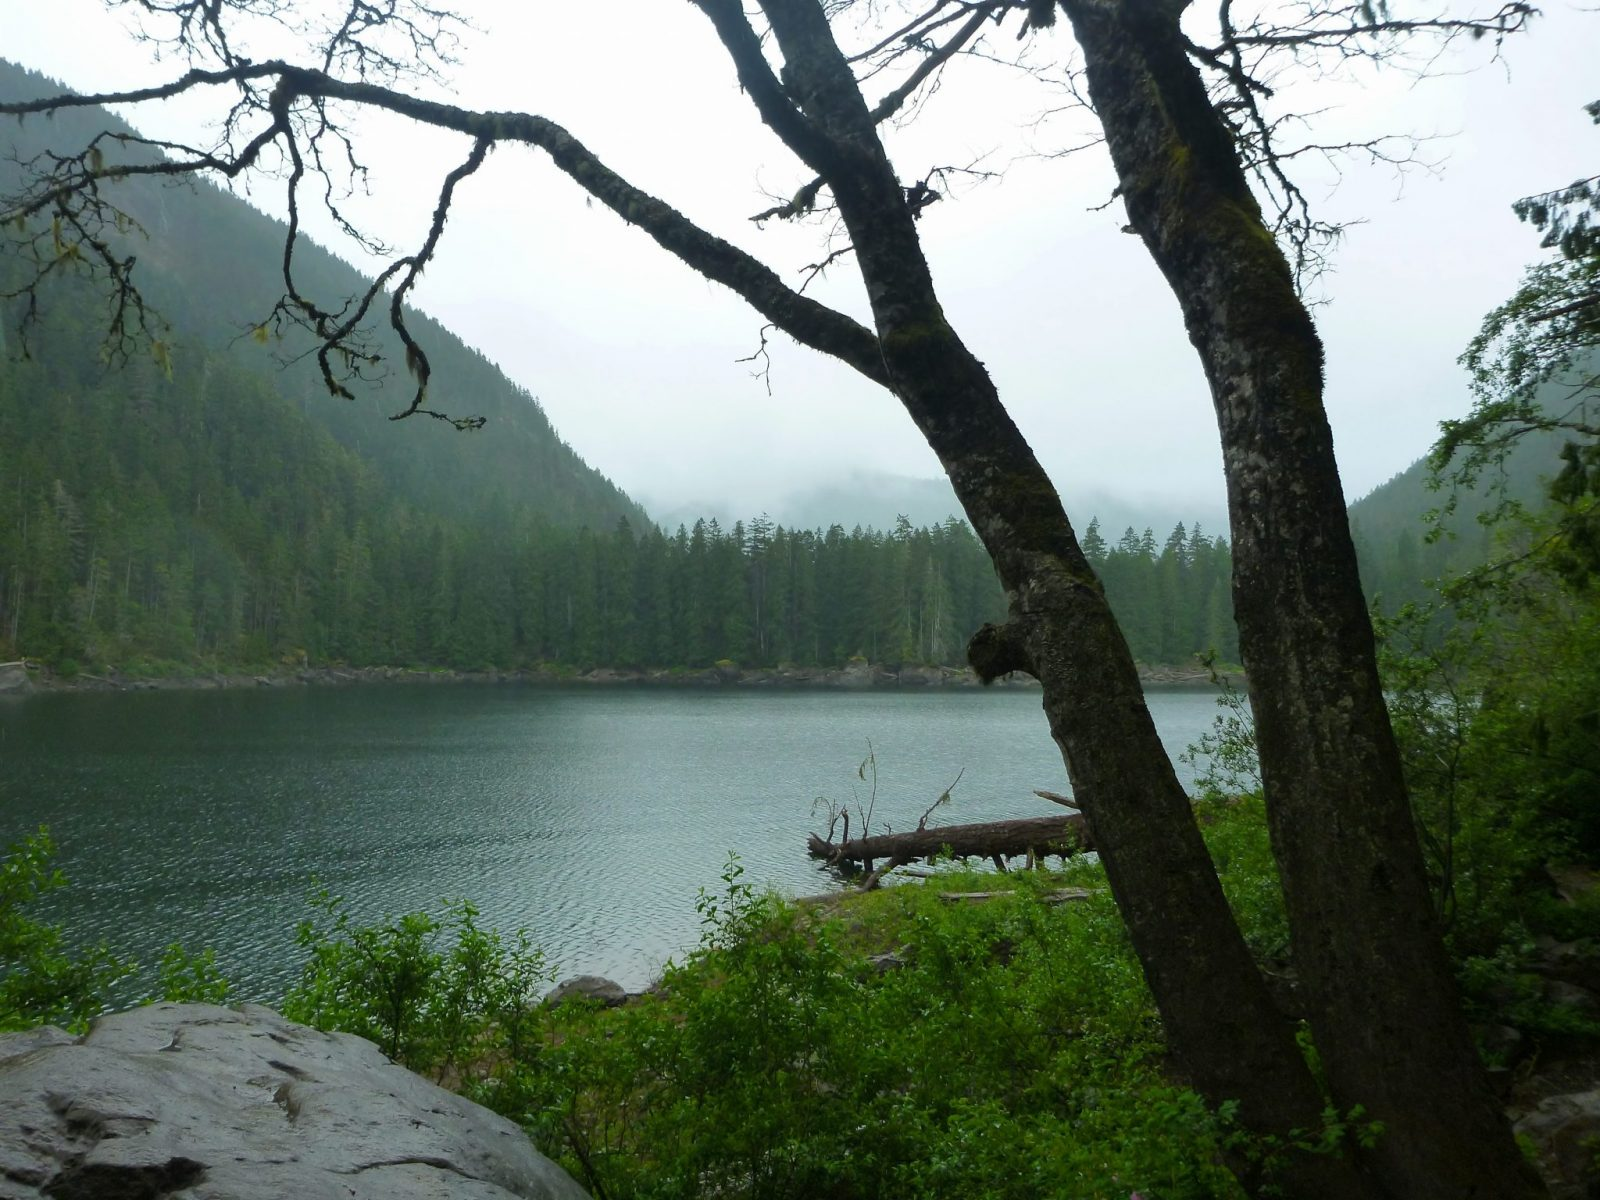 An alpine lake on a foggy day surrounded by forested hills